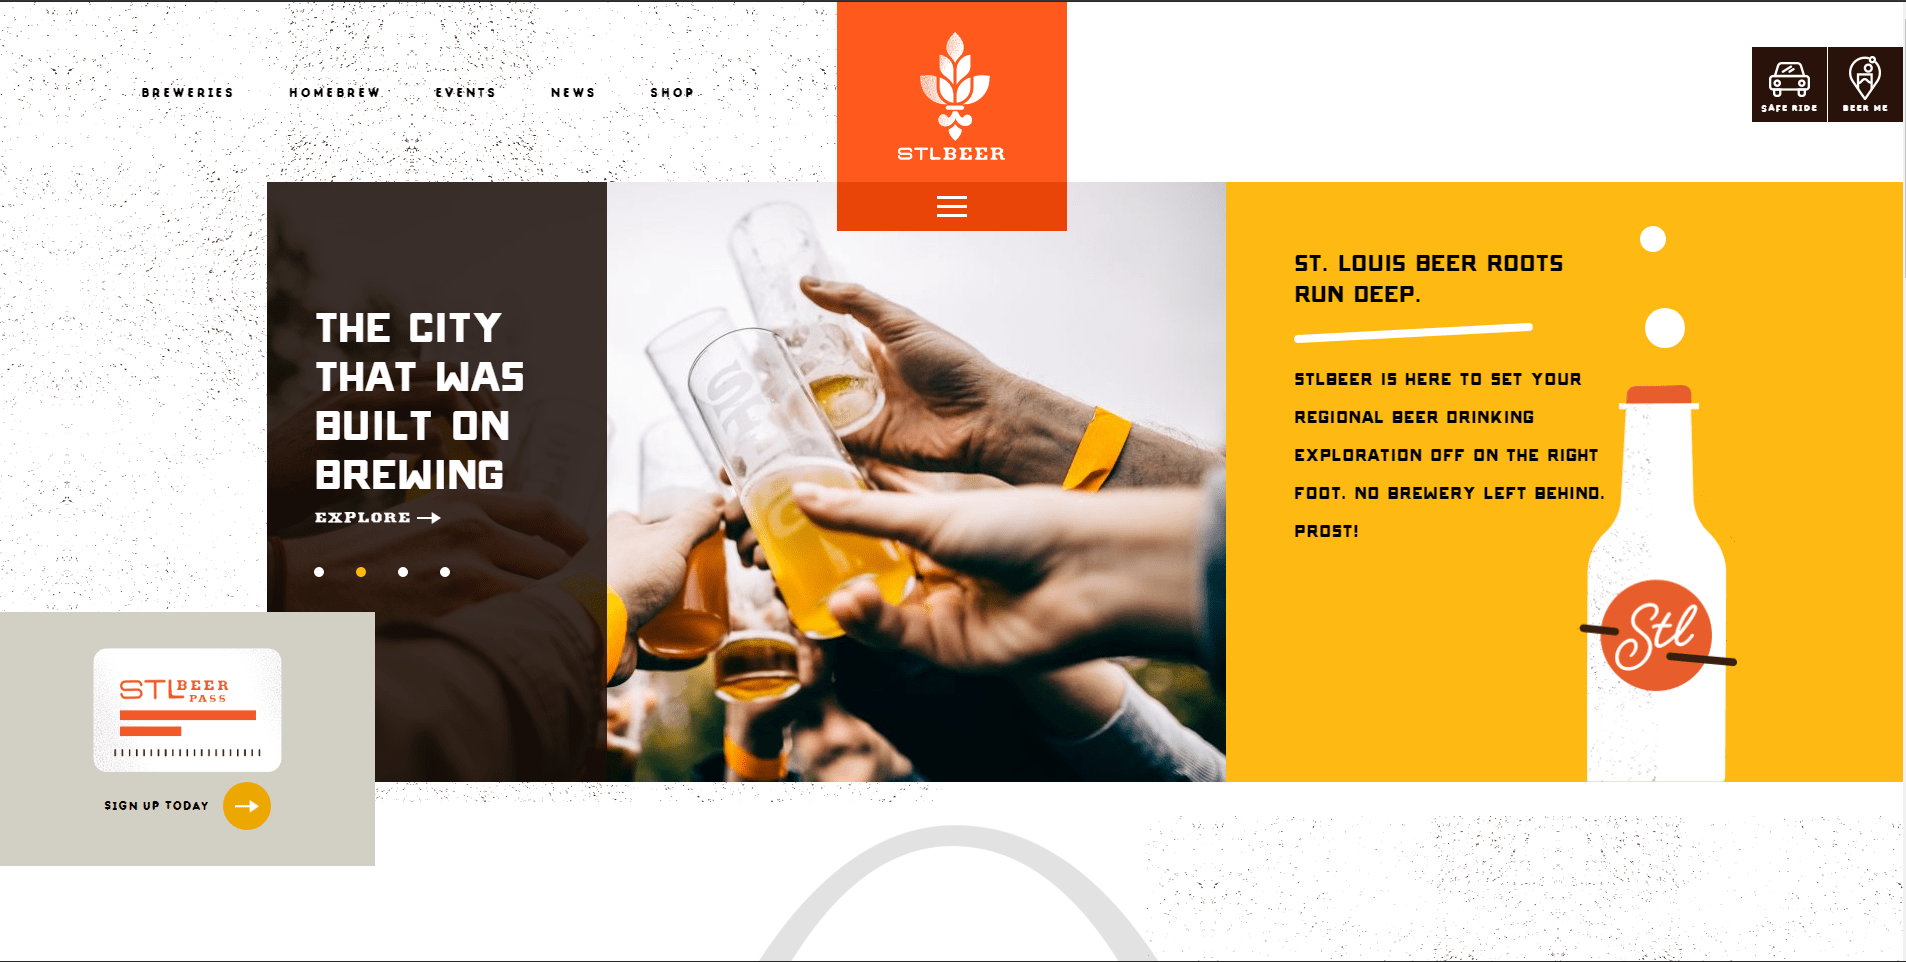 4 Well-Designed Craft Beer Websites